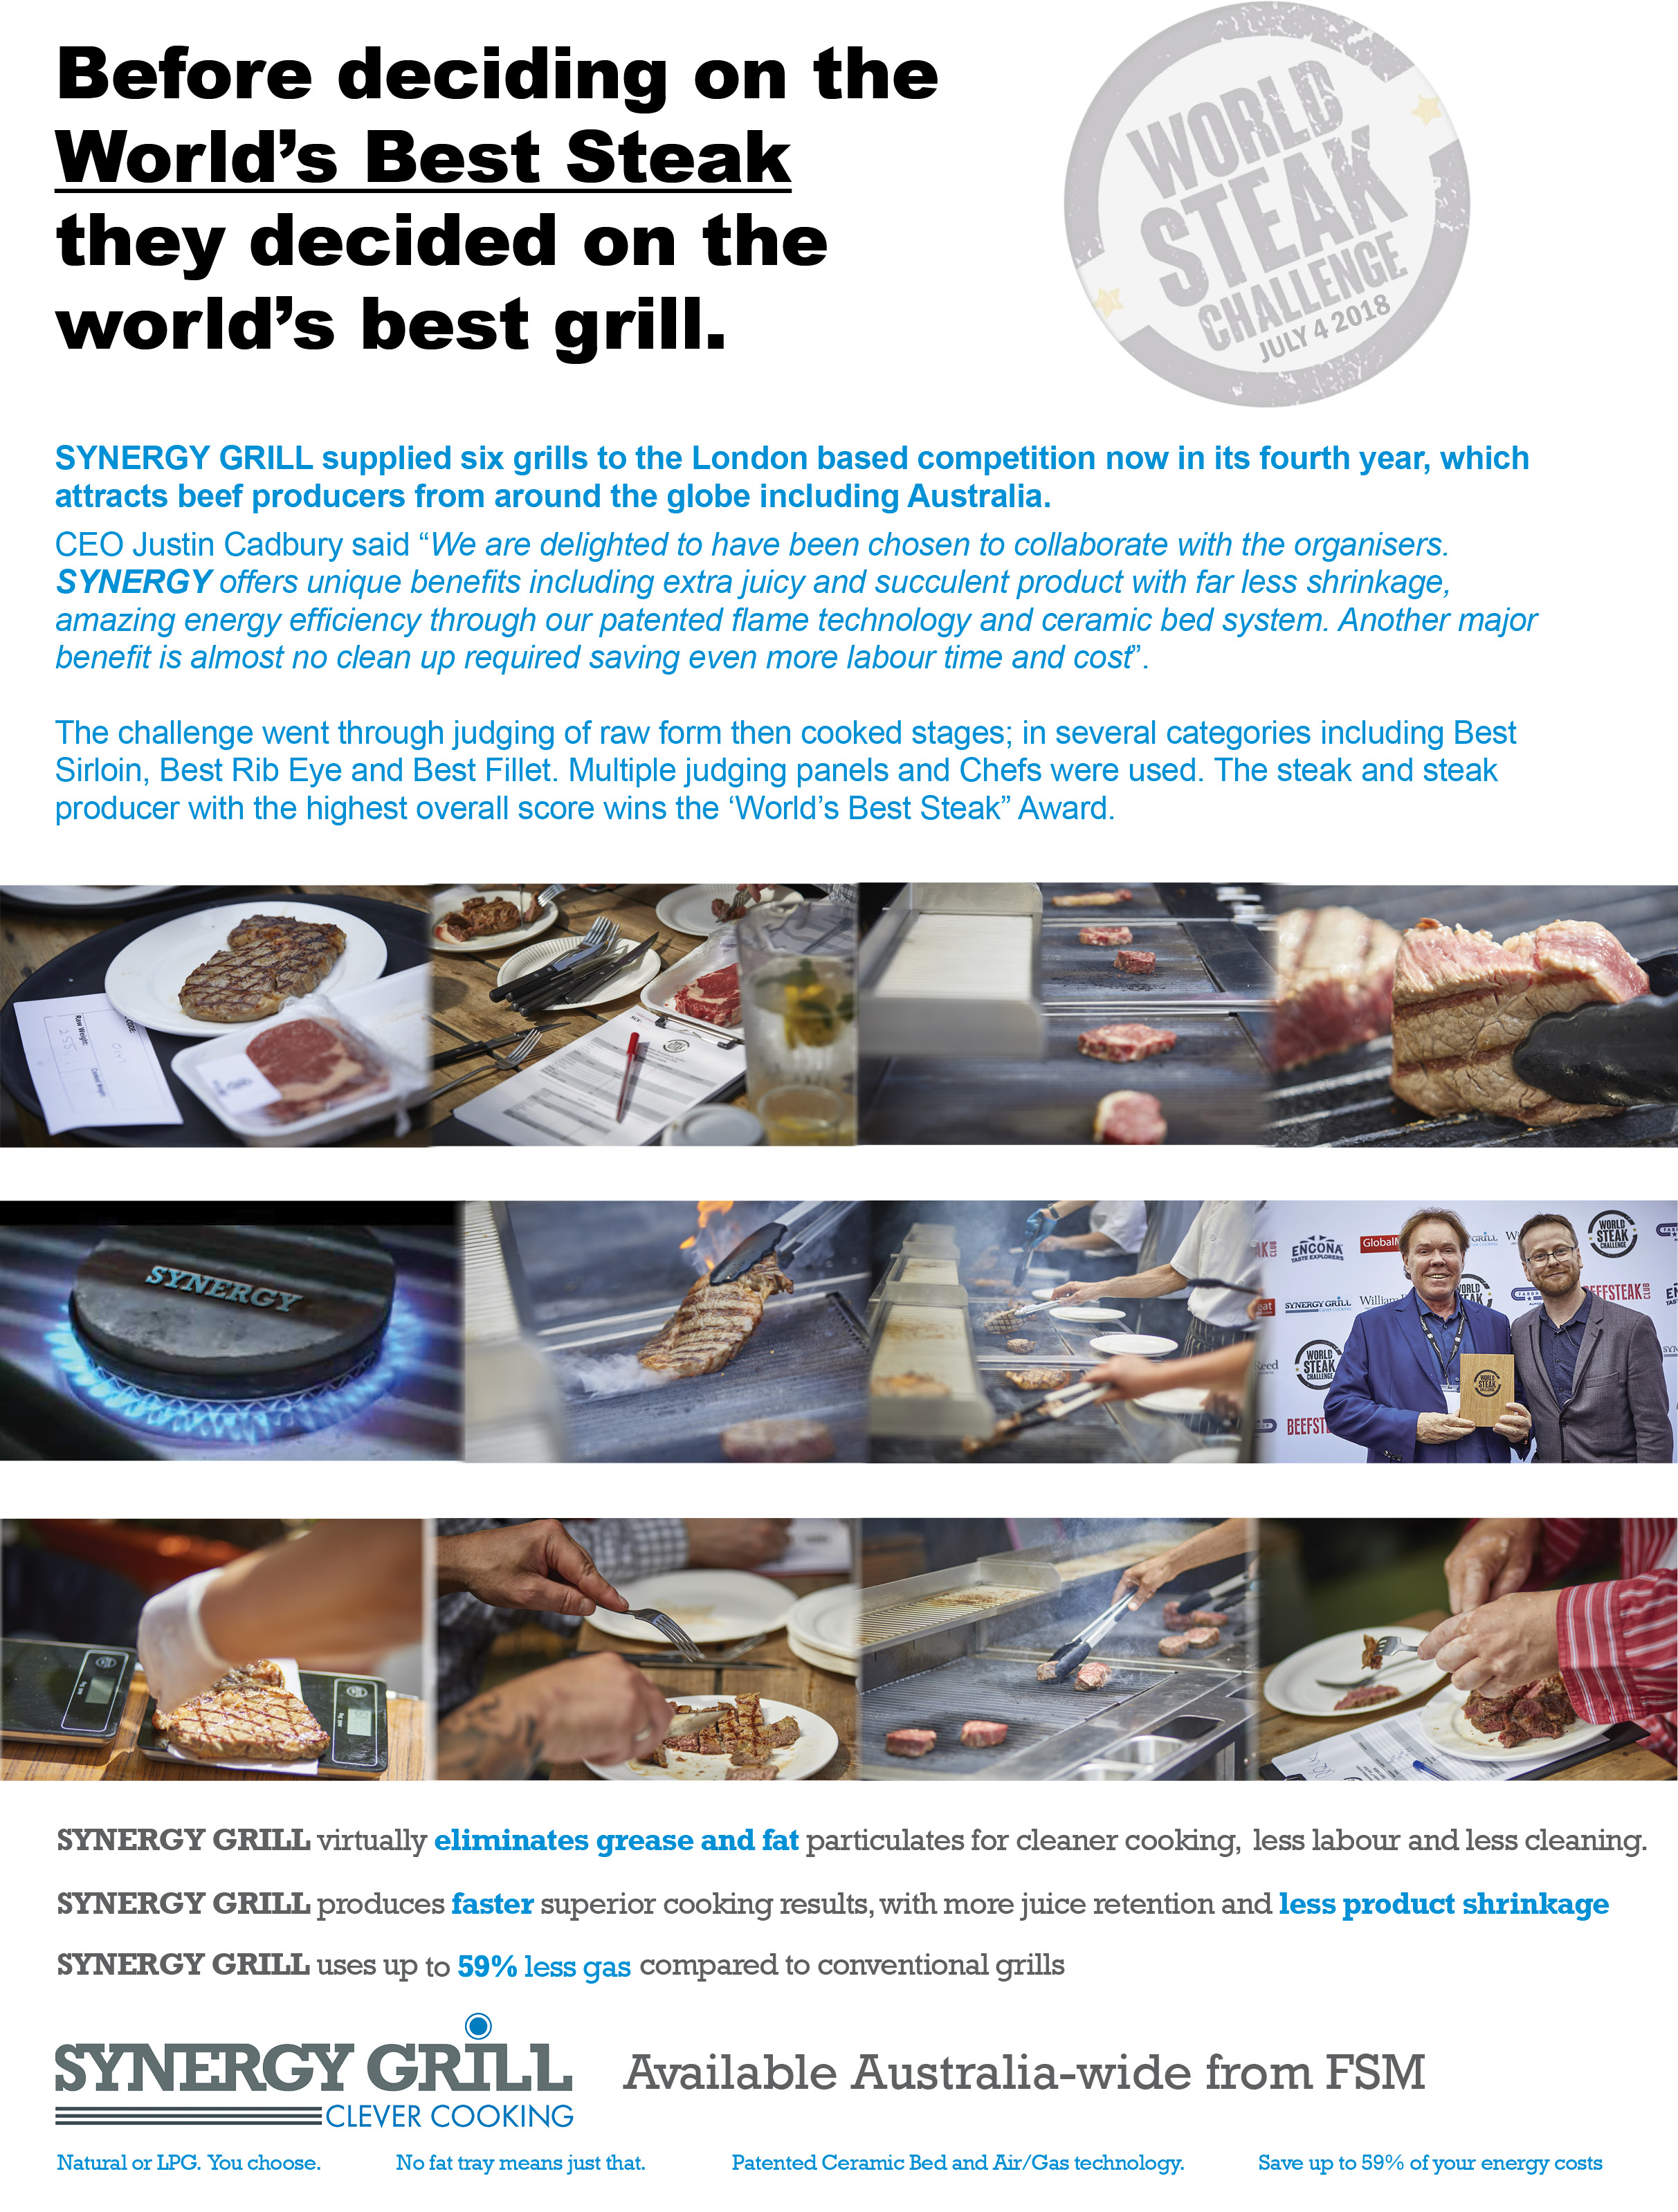 SYNERGY GRILLS USED TO DECIDE THE WINNER OF THE WORLD'S BEST STEAK CHALLENGE 2018